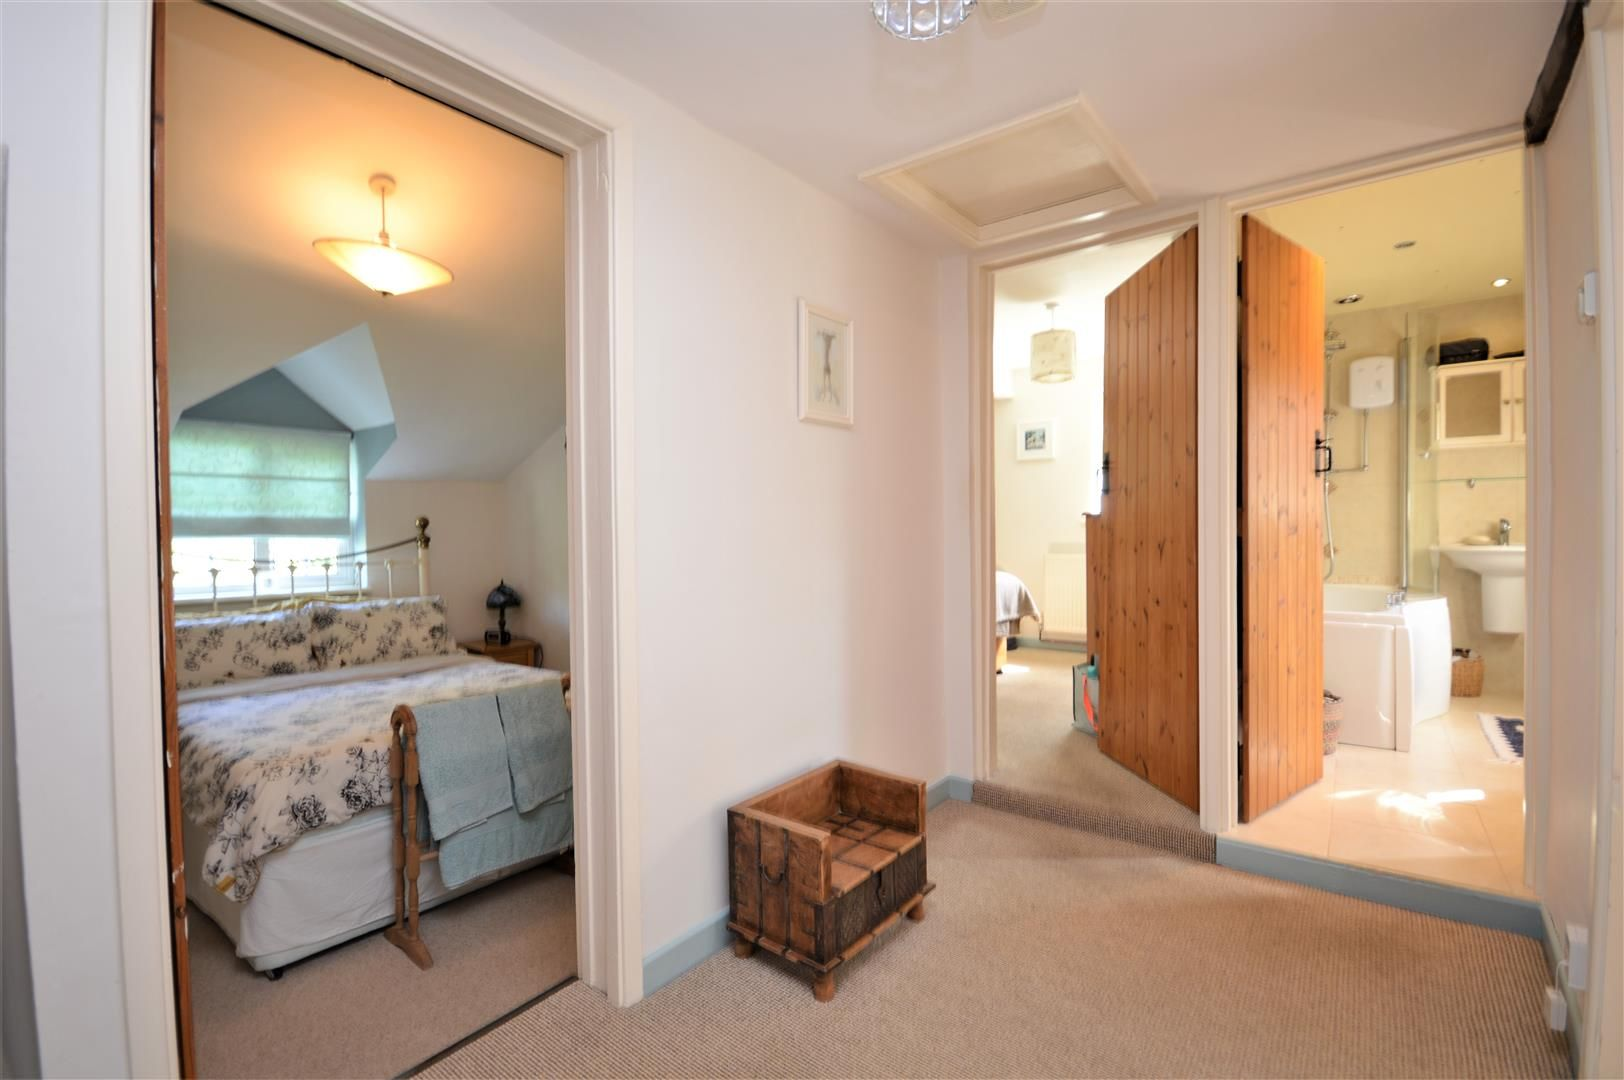 3 bed semi-detached for sale in Stretton Sugwas  - Property Image 18